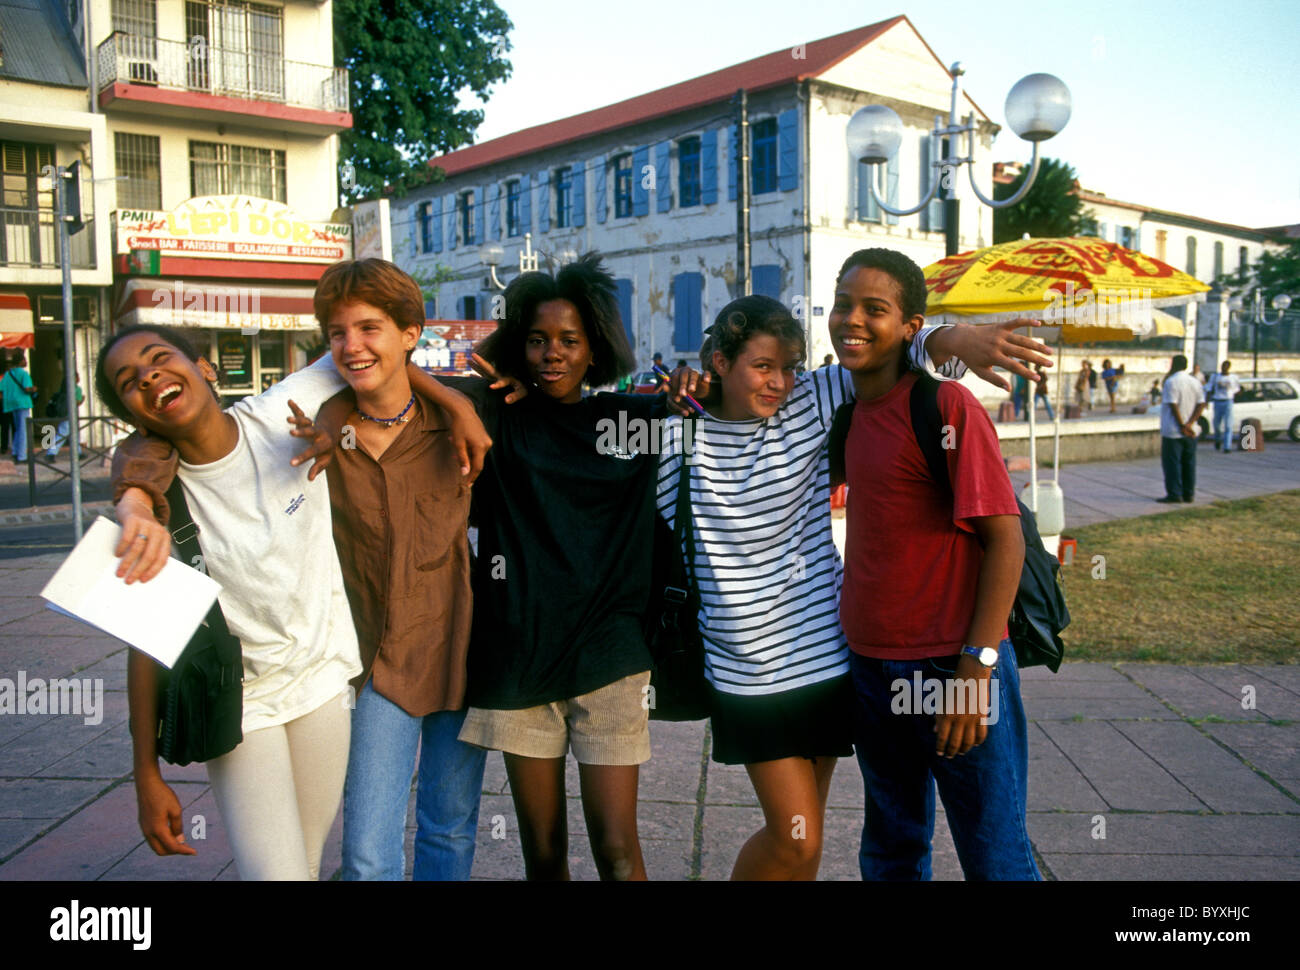 French students, students, teen girls, teen boys, teenagers, Pointe-a-Pitre, Grande-Terre, Guadeloupe, France, French - Stock Image